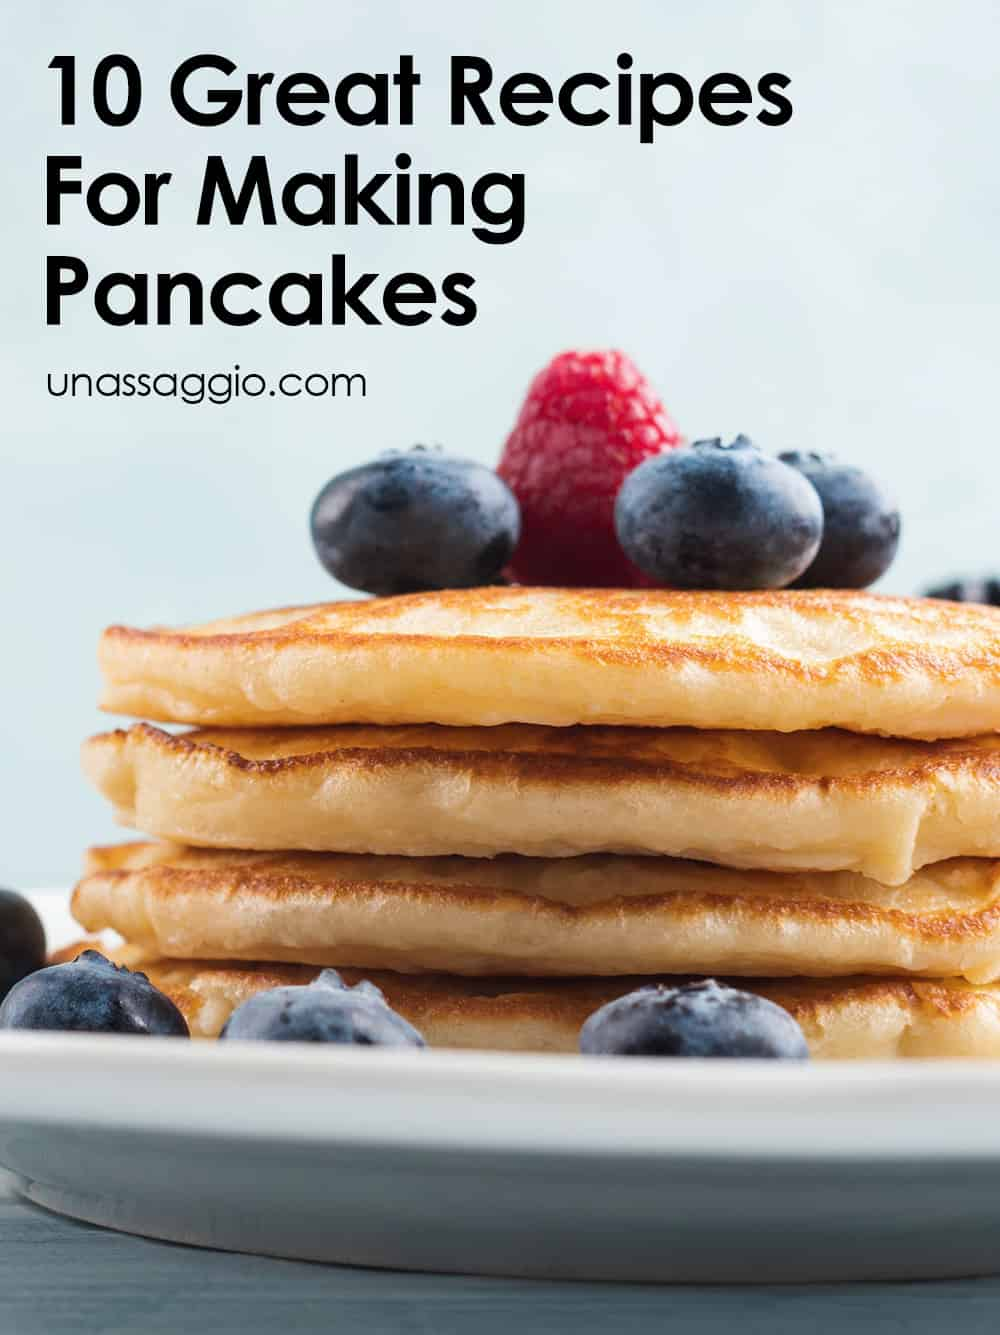 10 Great Recipes For Making Pancakes